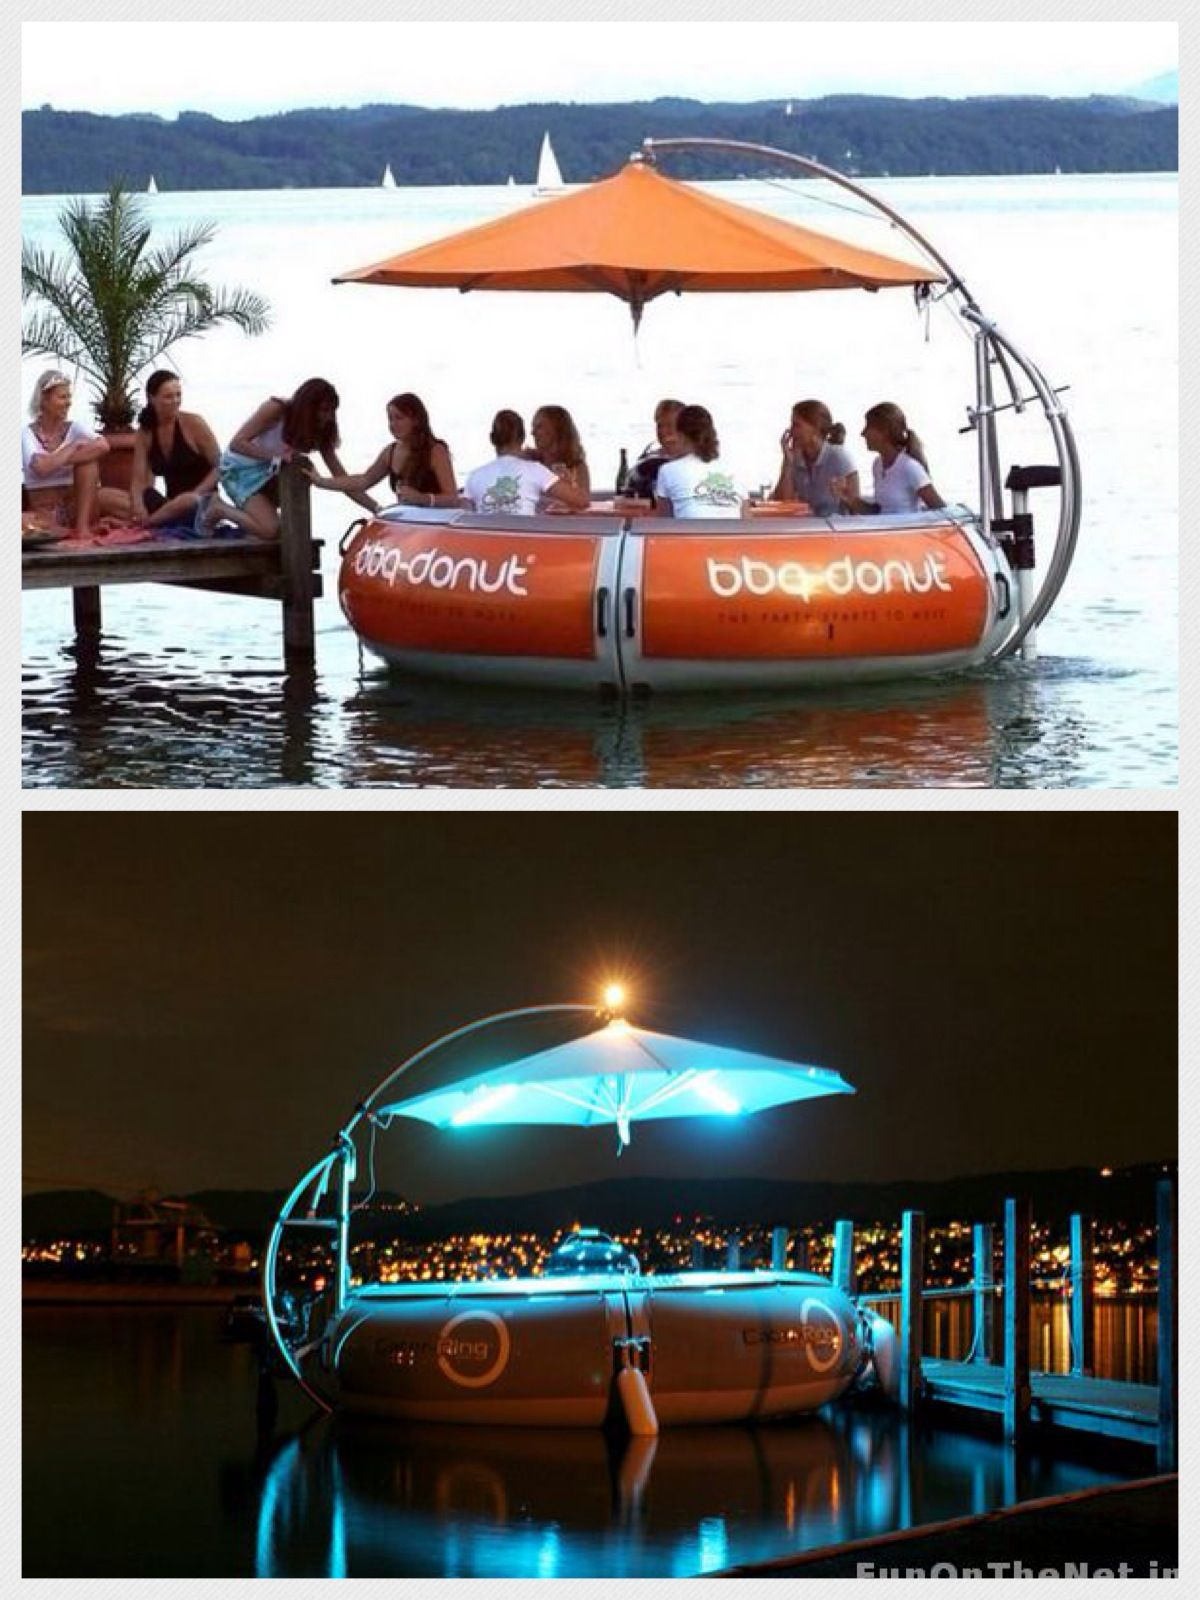 Dubai - BBQ Donut Boat | Dubai (UAE) | Dubai travel, Inflatable ...